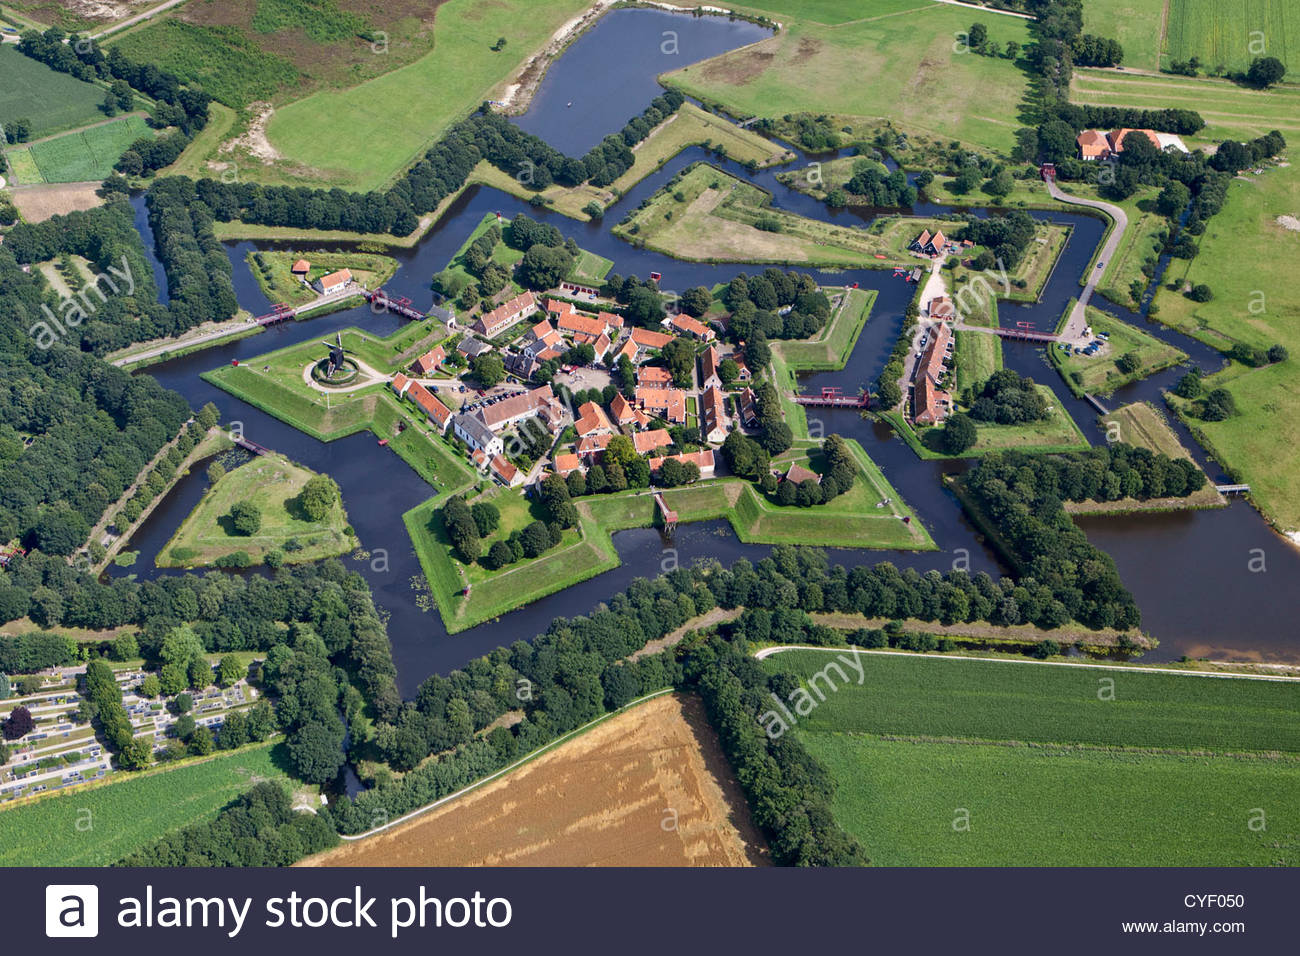 The Netherlands, Vlagtwedde. The fortified village of Fort Bourtange. Aerial. - Stock Image